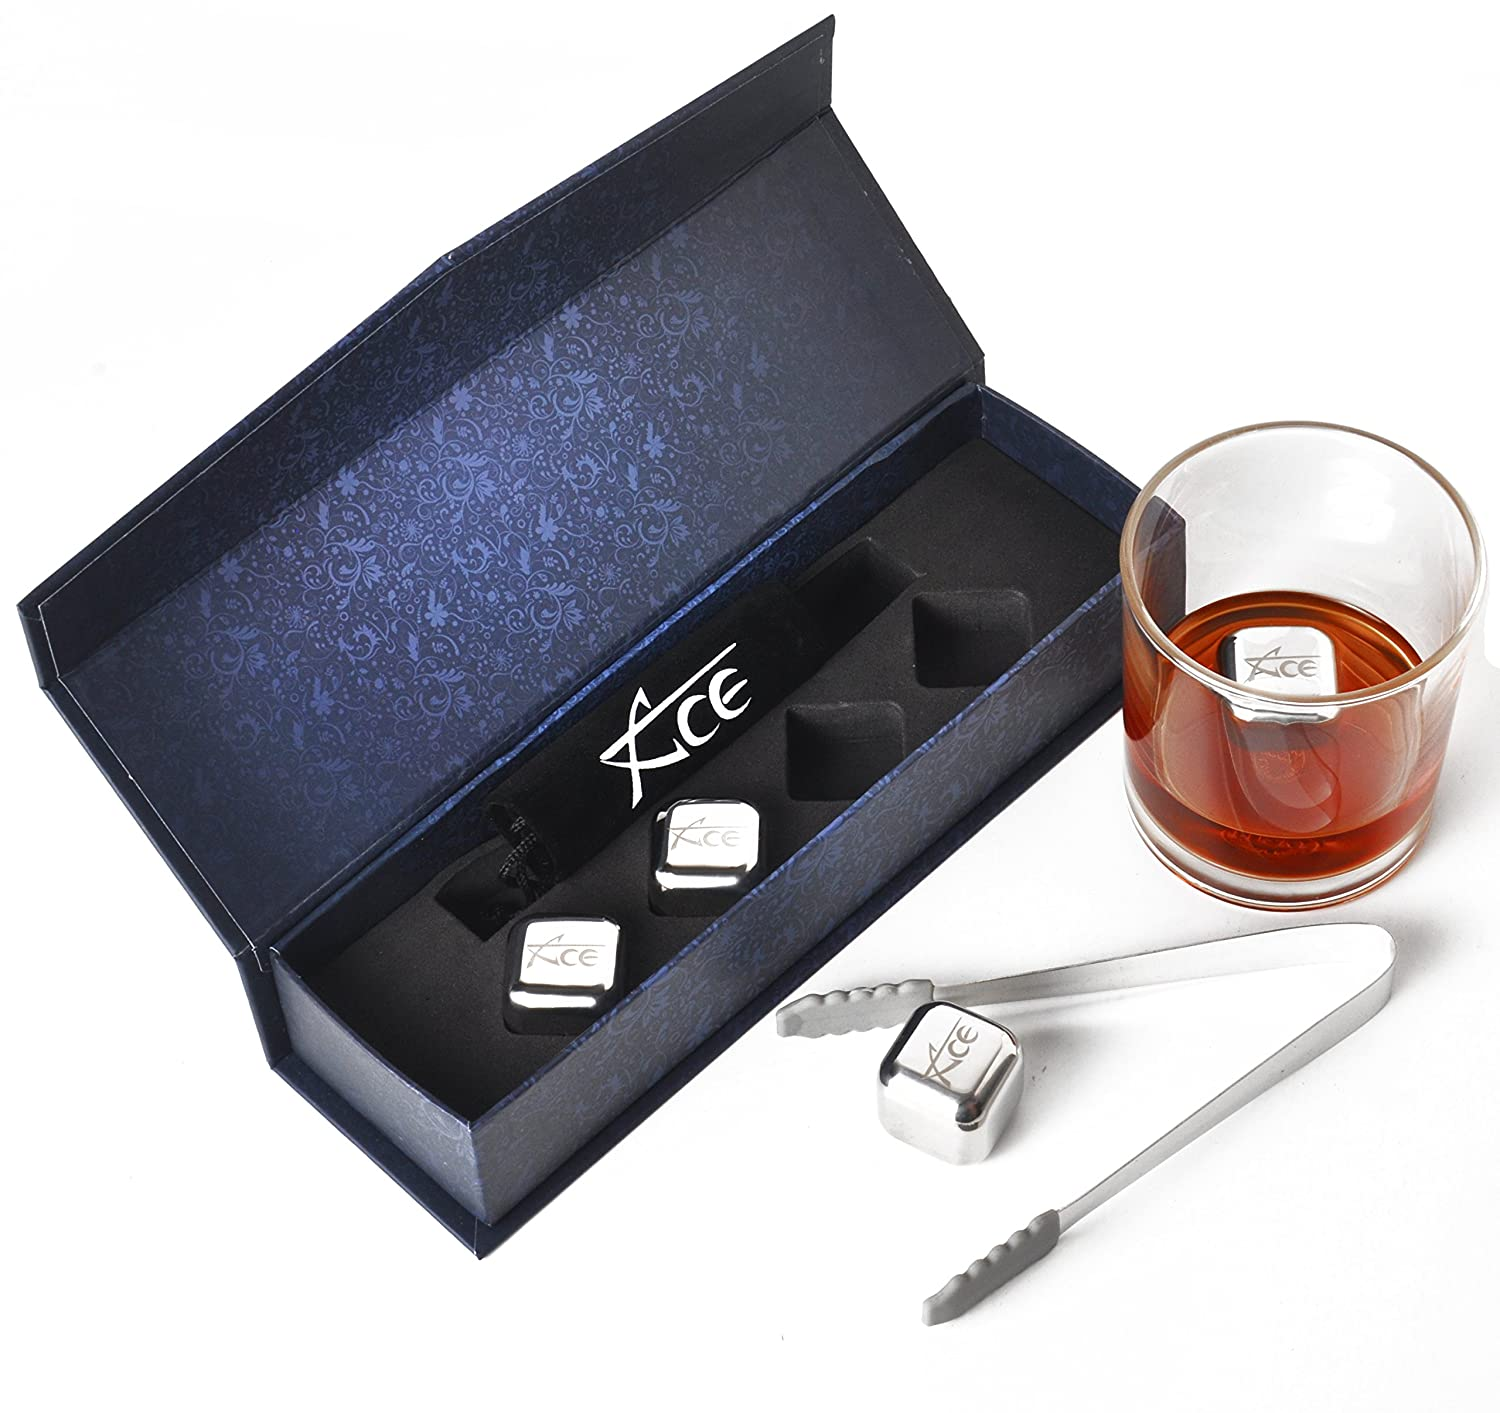 ACE Whiskey Stones - Rock Your Party With Stylish Reusable Stainless Steel Ice Cubes! Comes In Classy EVA Gift Box. See B01M9F7CYM For Tongs Option ACE XChange HK-001